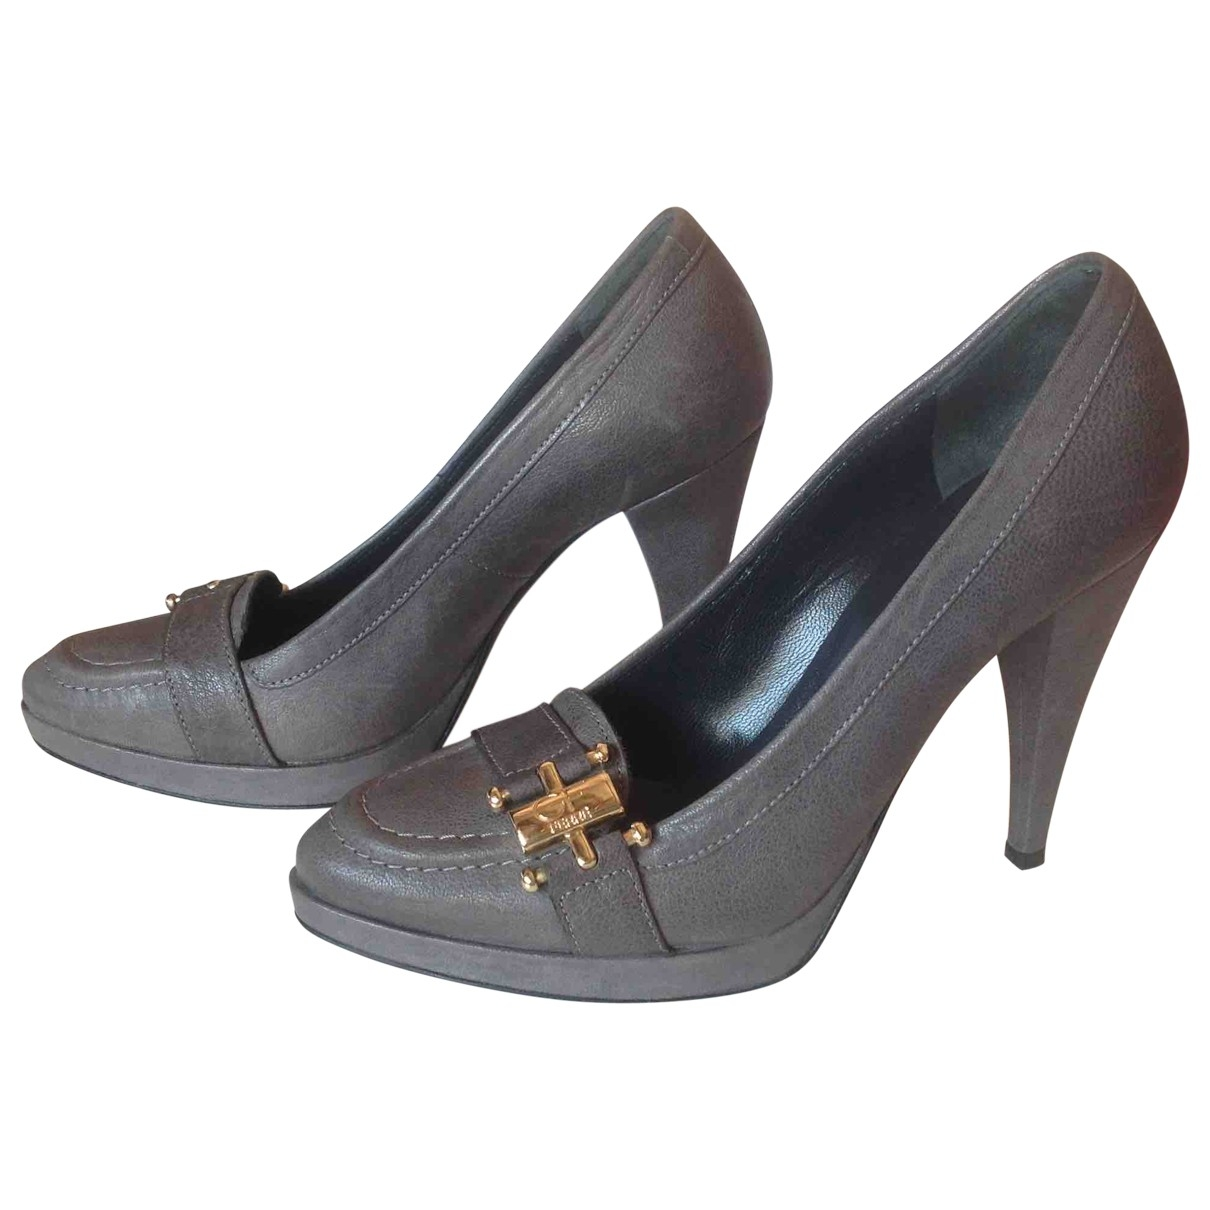 Gianfranco Ferre \N Pumps in  Grau Leder